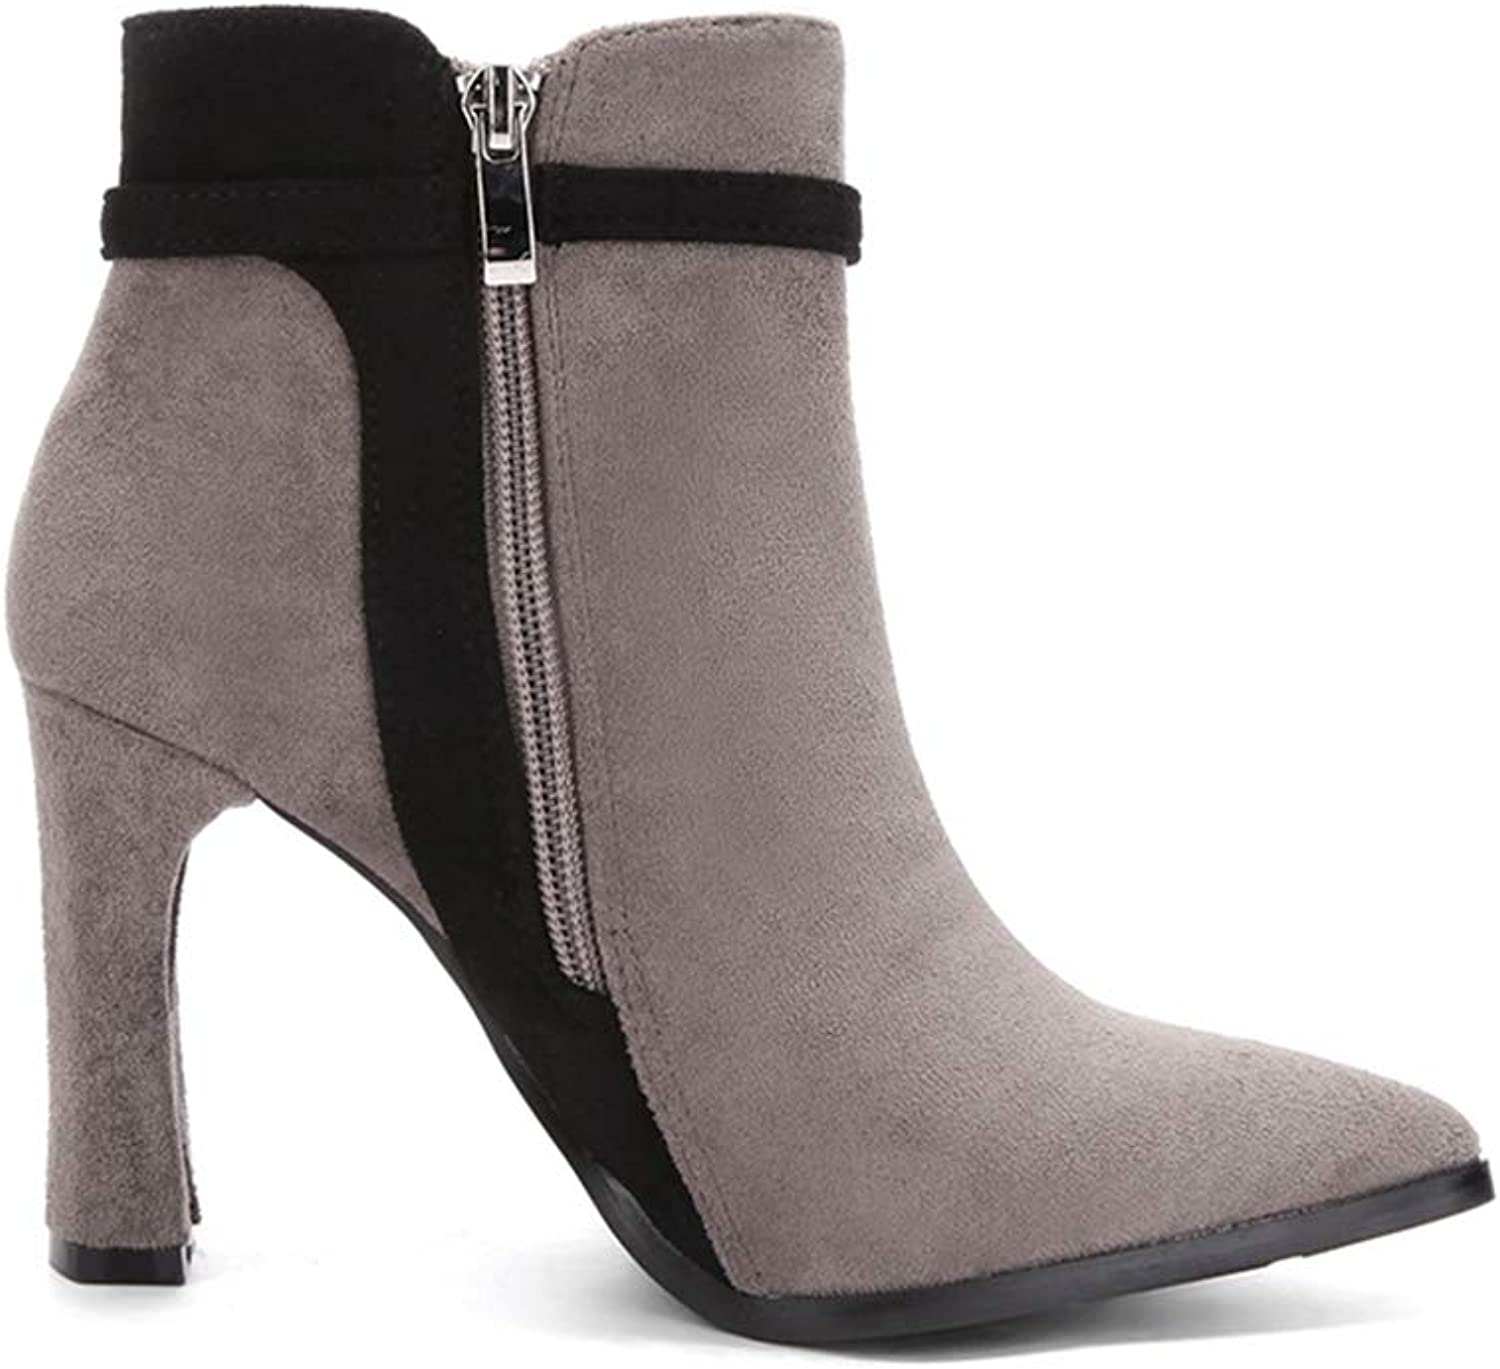 T-JULY Winter Women Solid European High Heel Ankle Boots Ladies Suede Leather Fashion Martin Boots